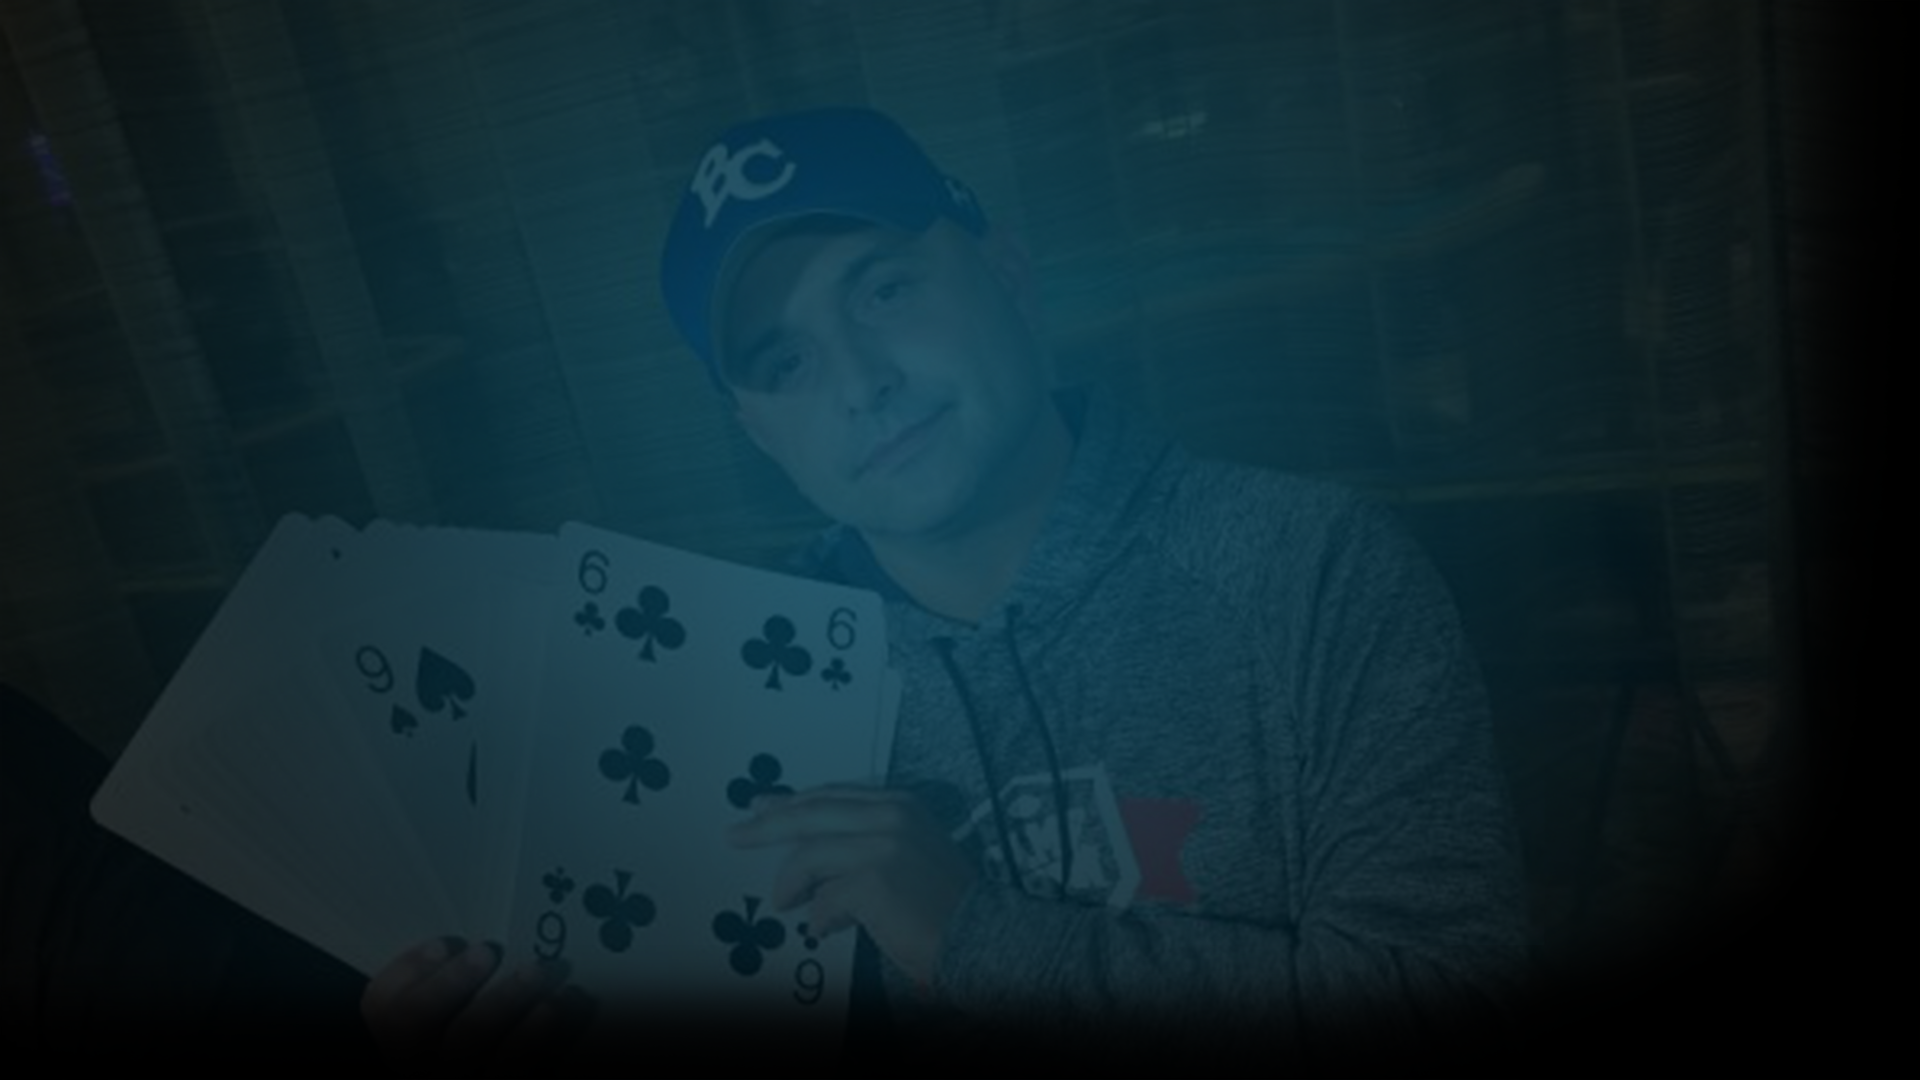 Still of Craig Carton holding giant playing card and looking at the camera in a grey hoodie and blue baseball cap. Flavorlab Score provided original score for documentary, Wildcard, on HBO, about Carton's radio days, double life, and arrest.